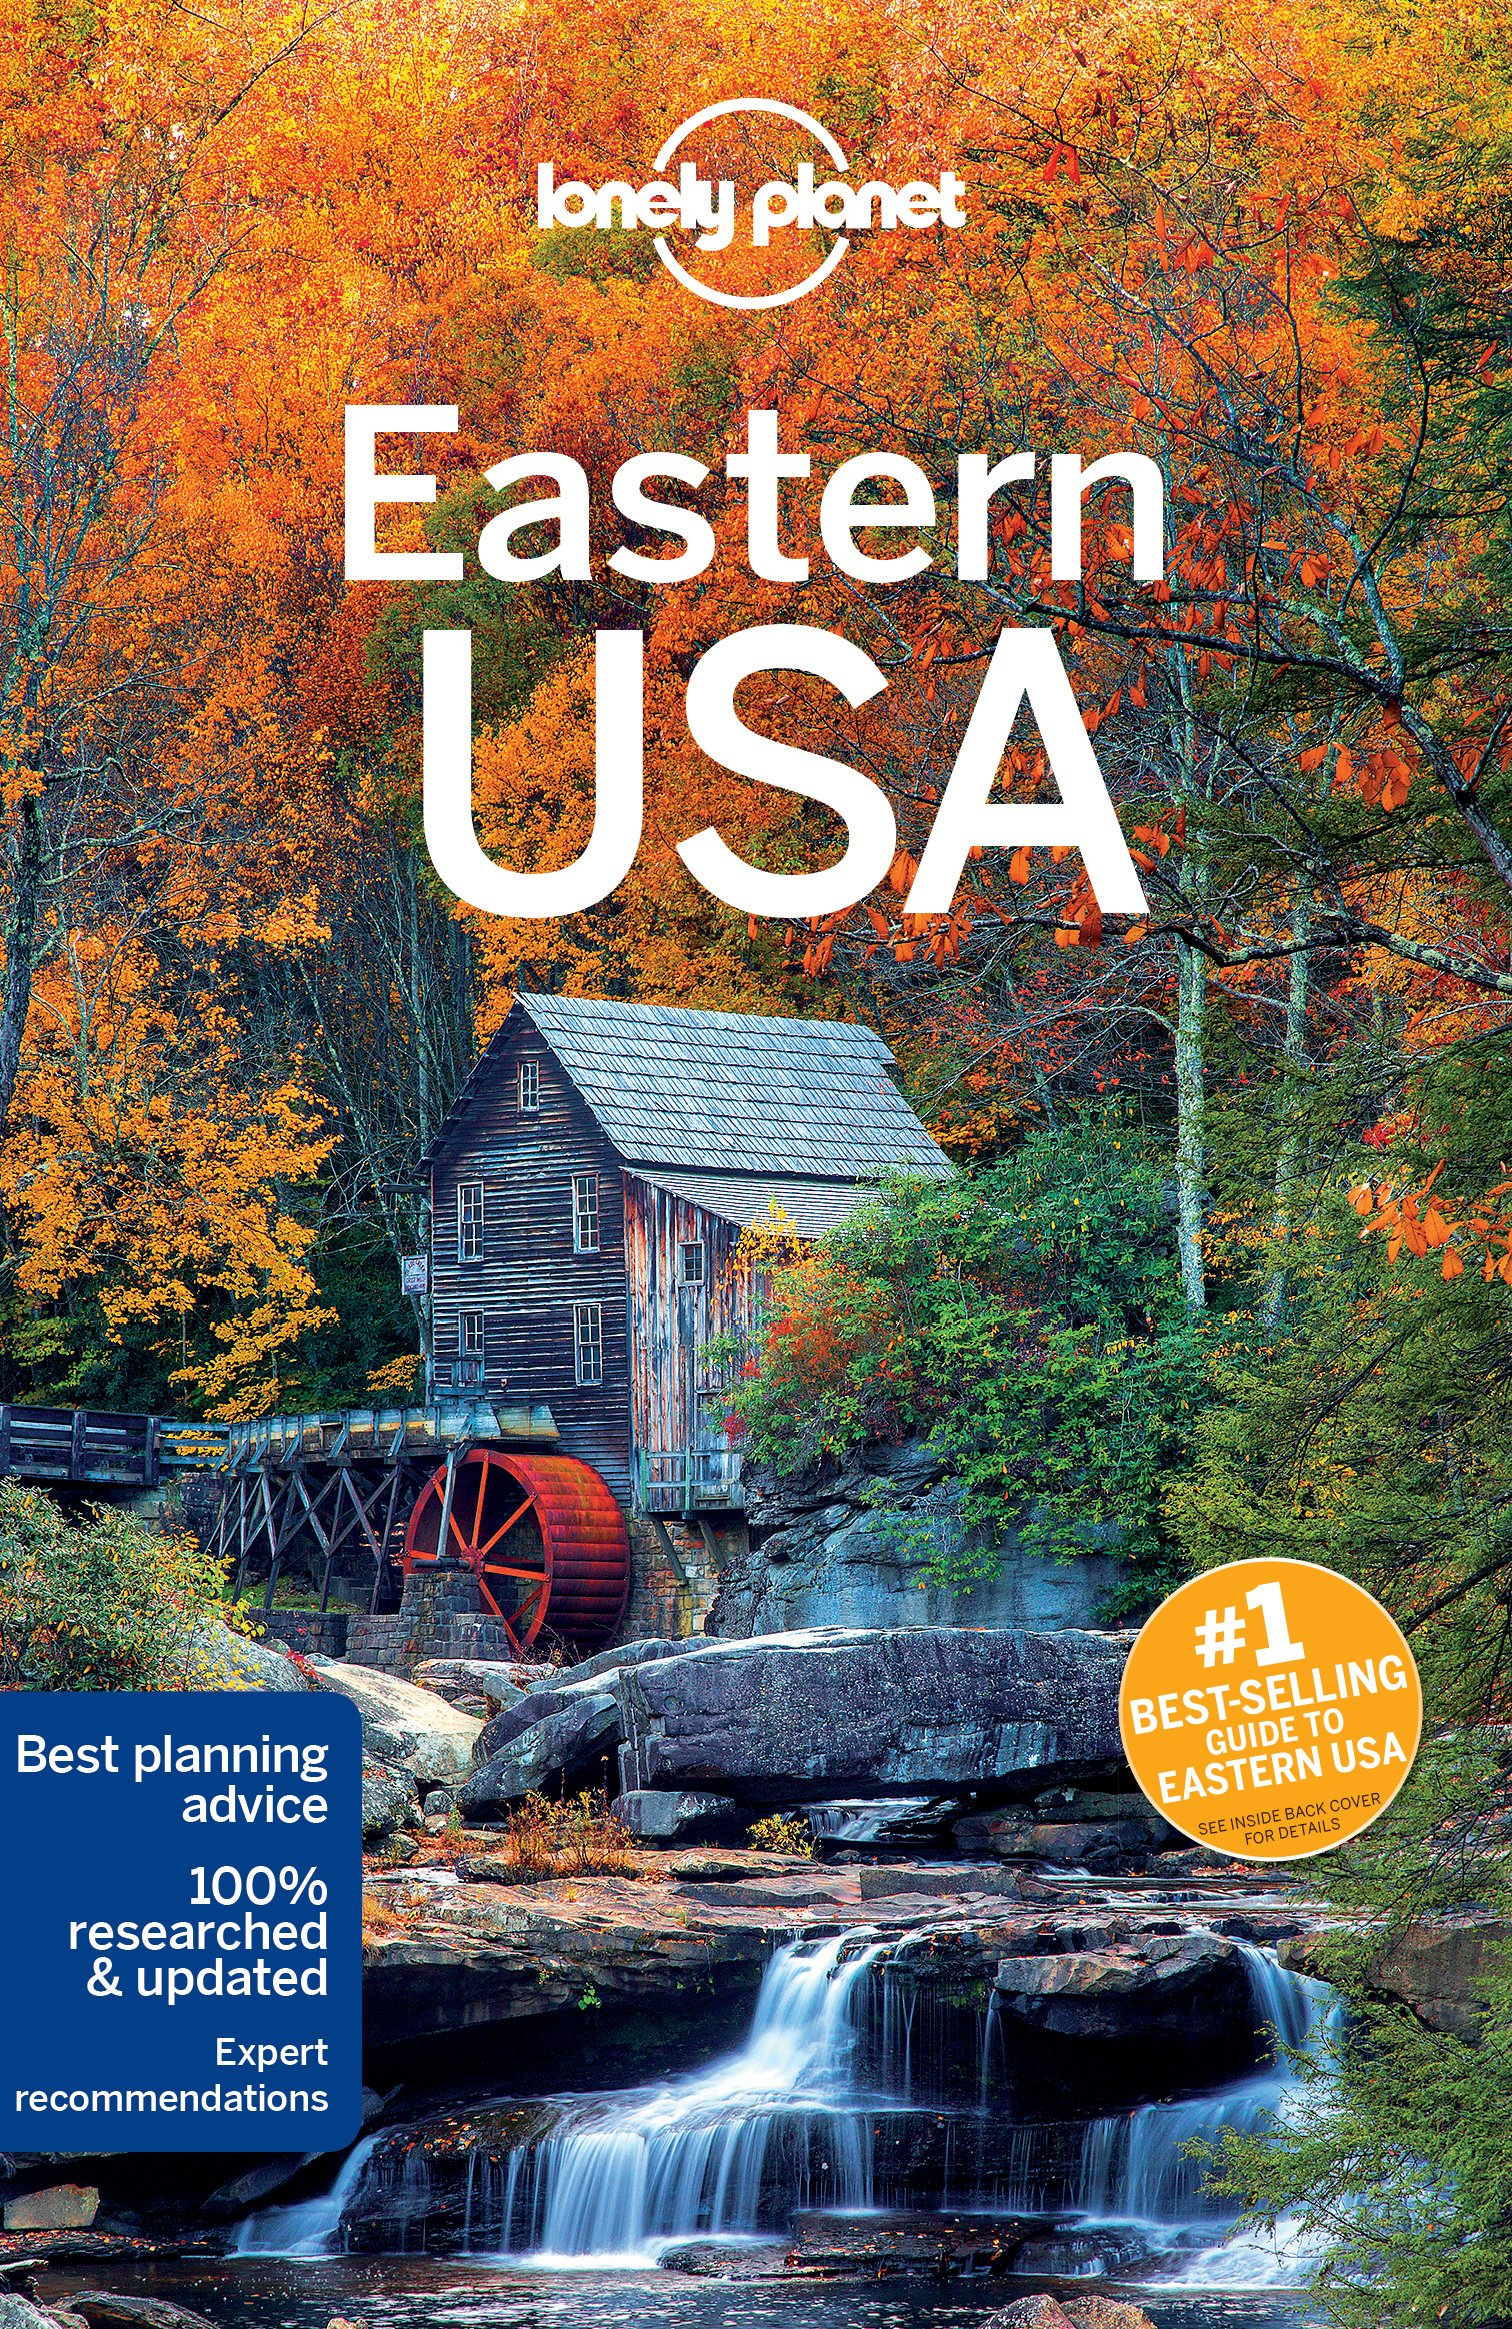 Lonely Planet Eastern Travel Guide product image